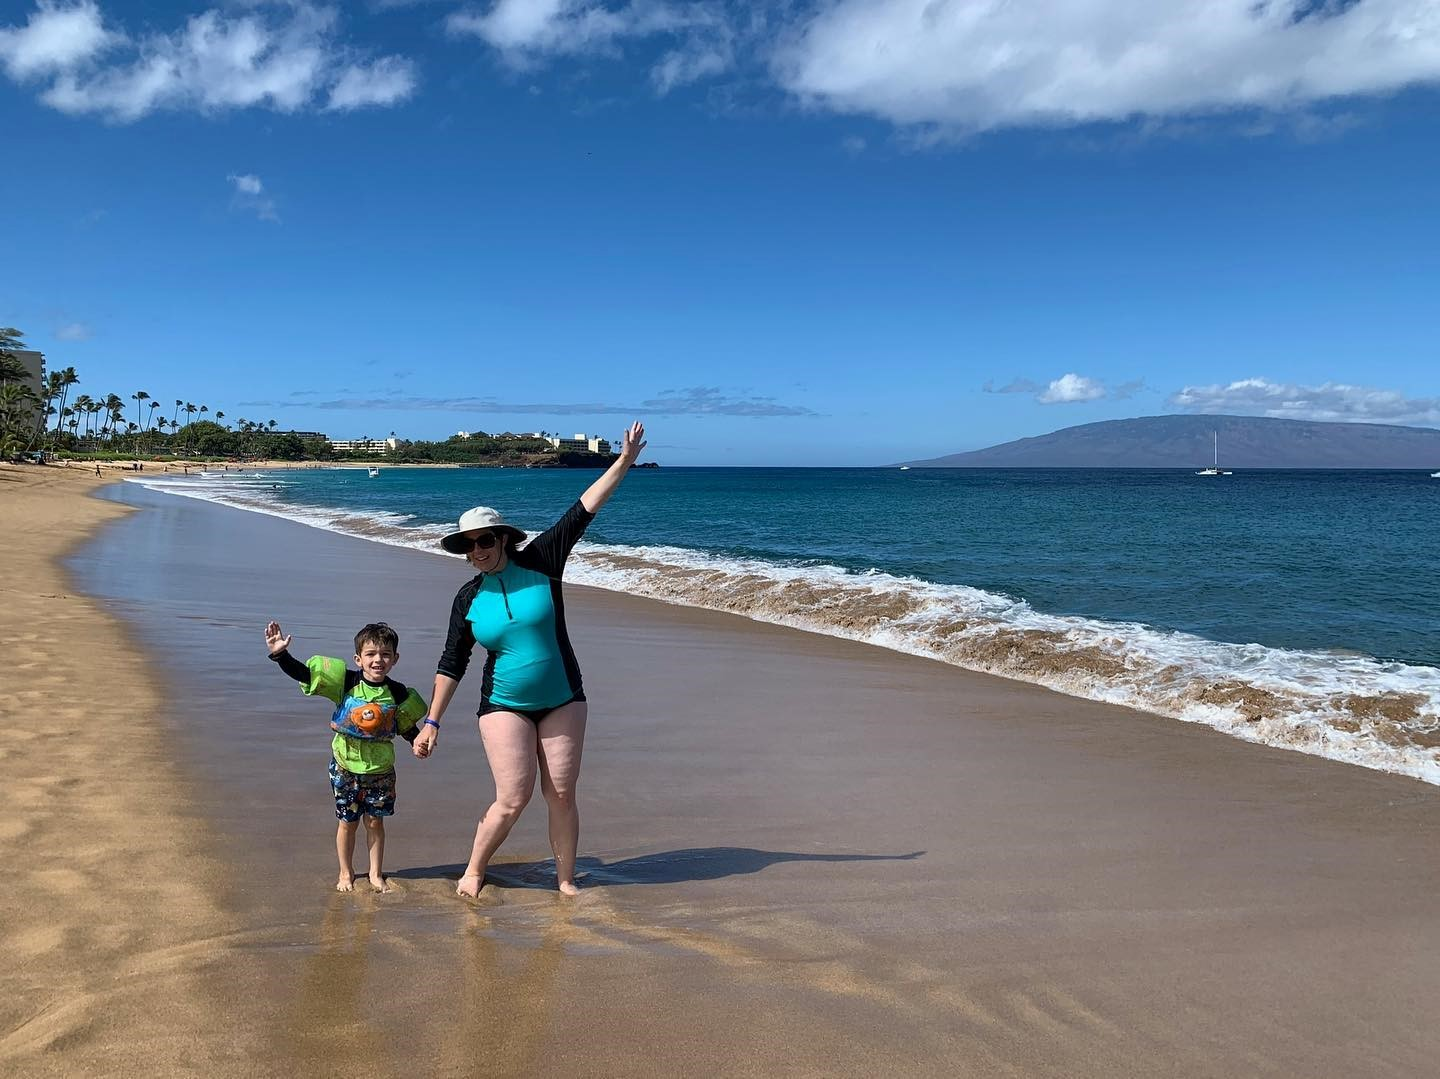 A mom and her son playing on the beach